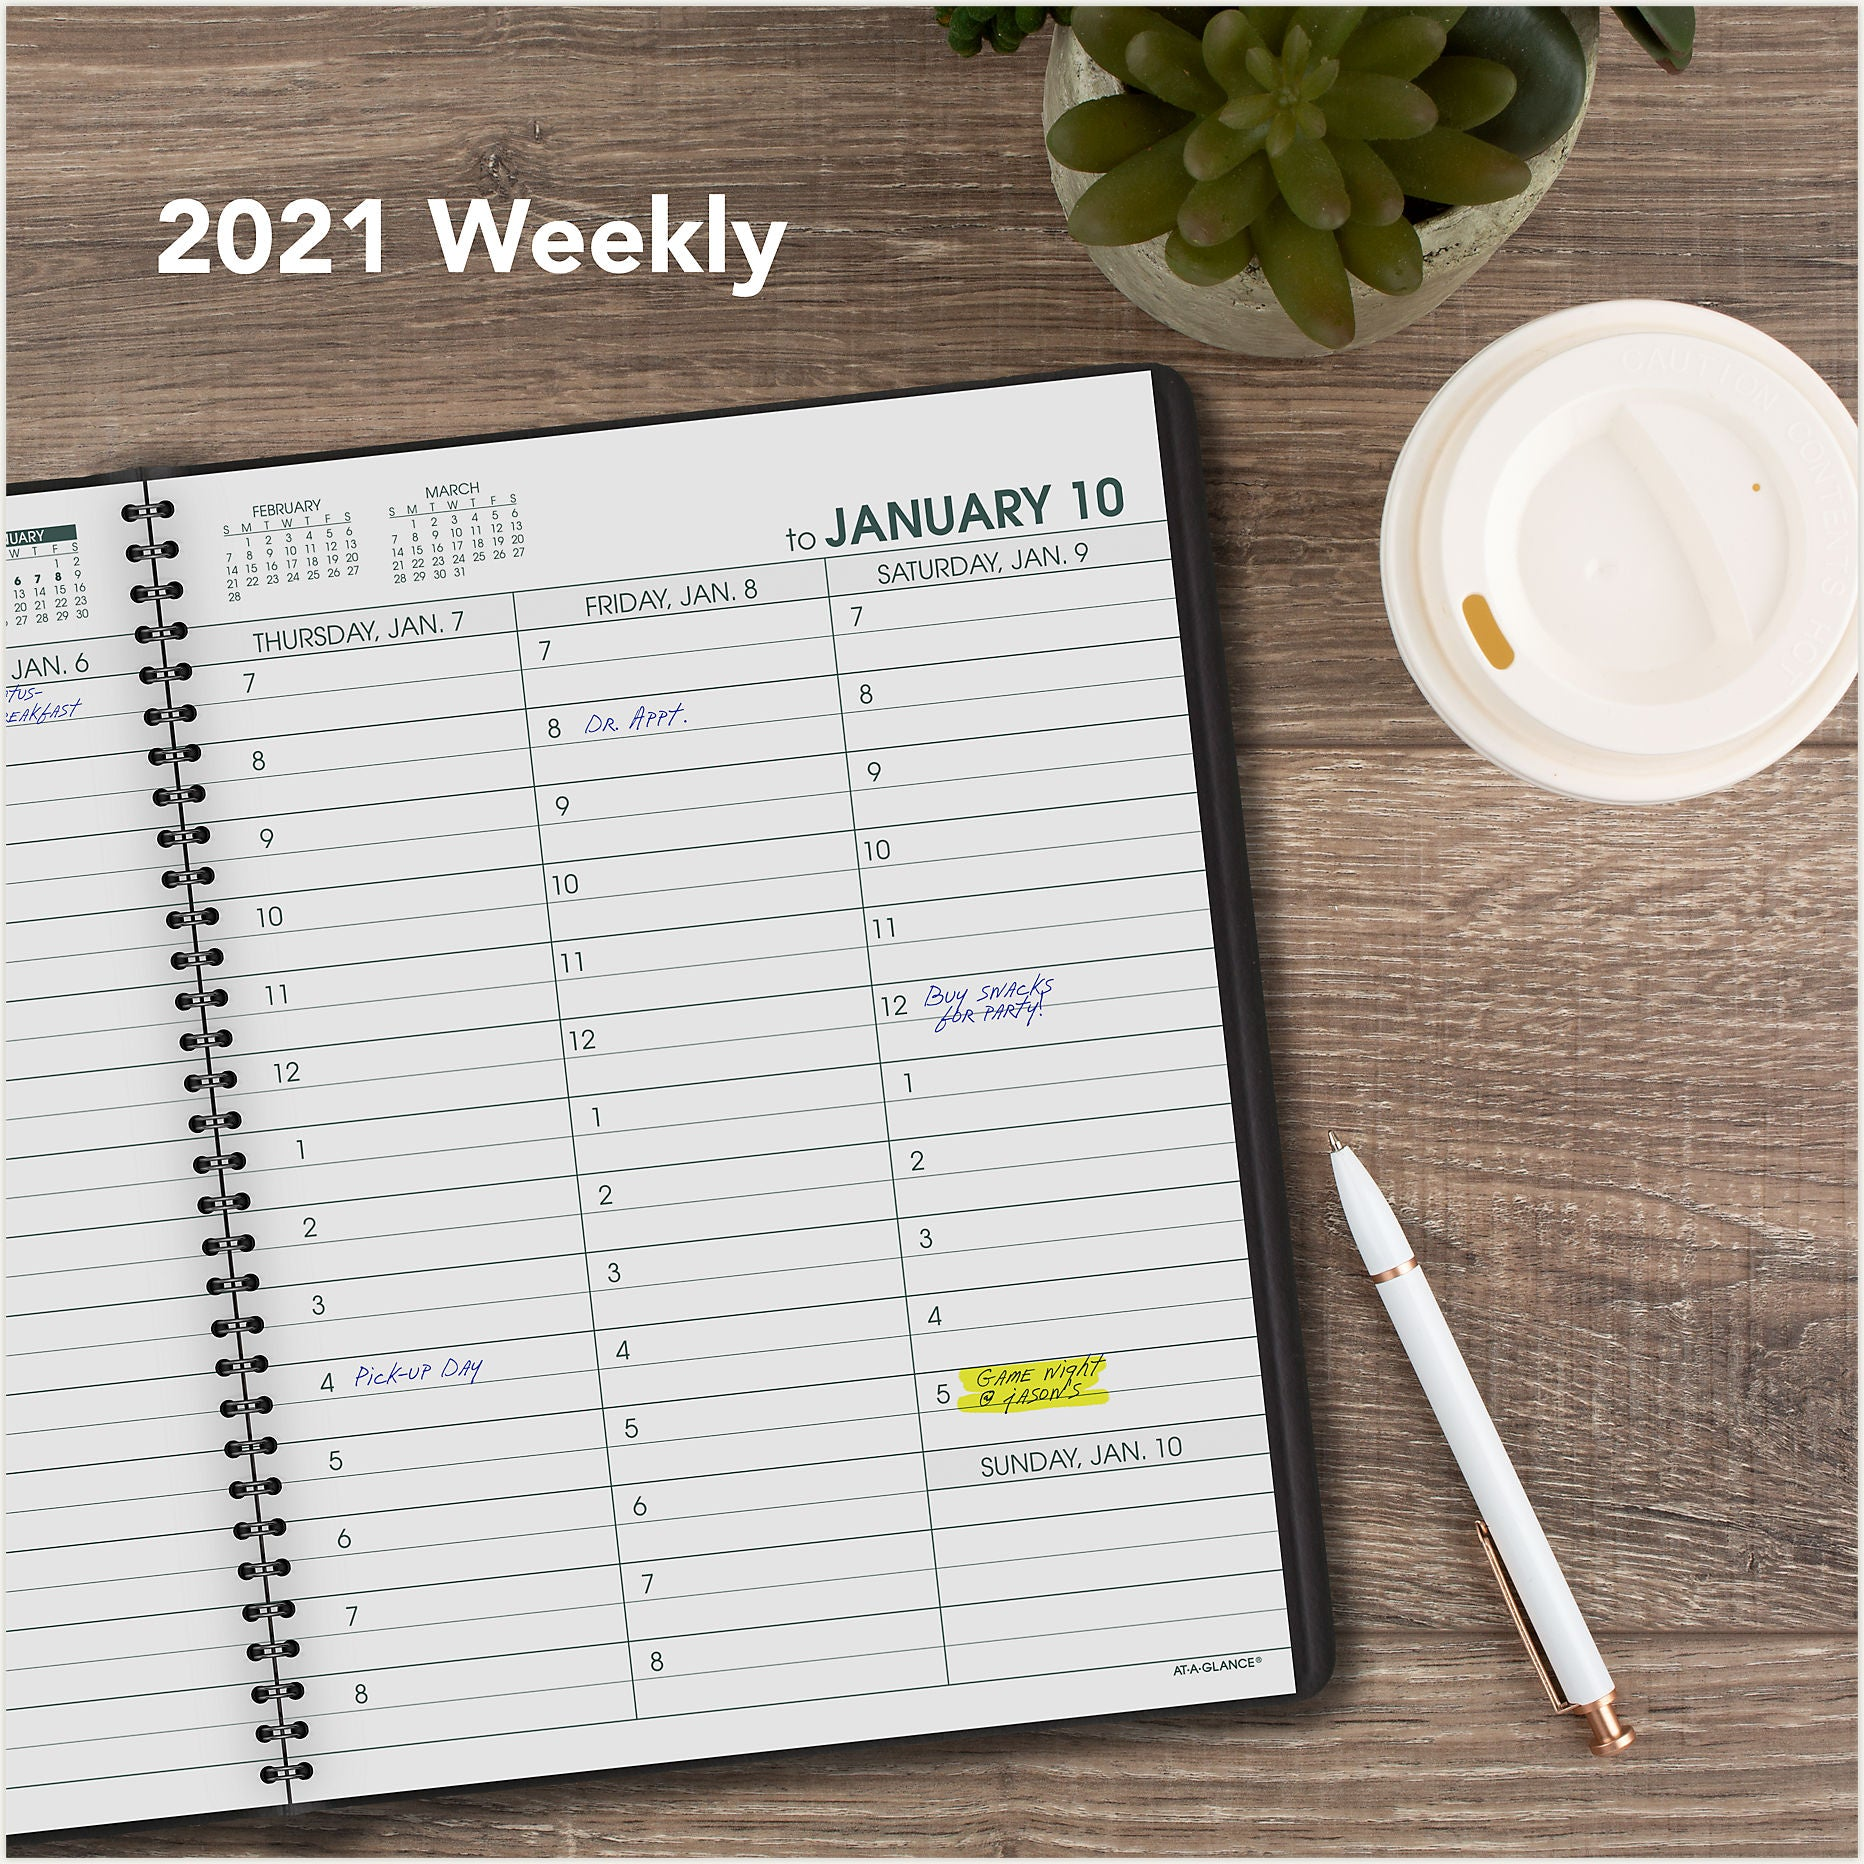 70-LP01-05 LARGE PRINT AT A GLANCE CALENDARS 2021